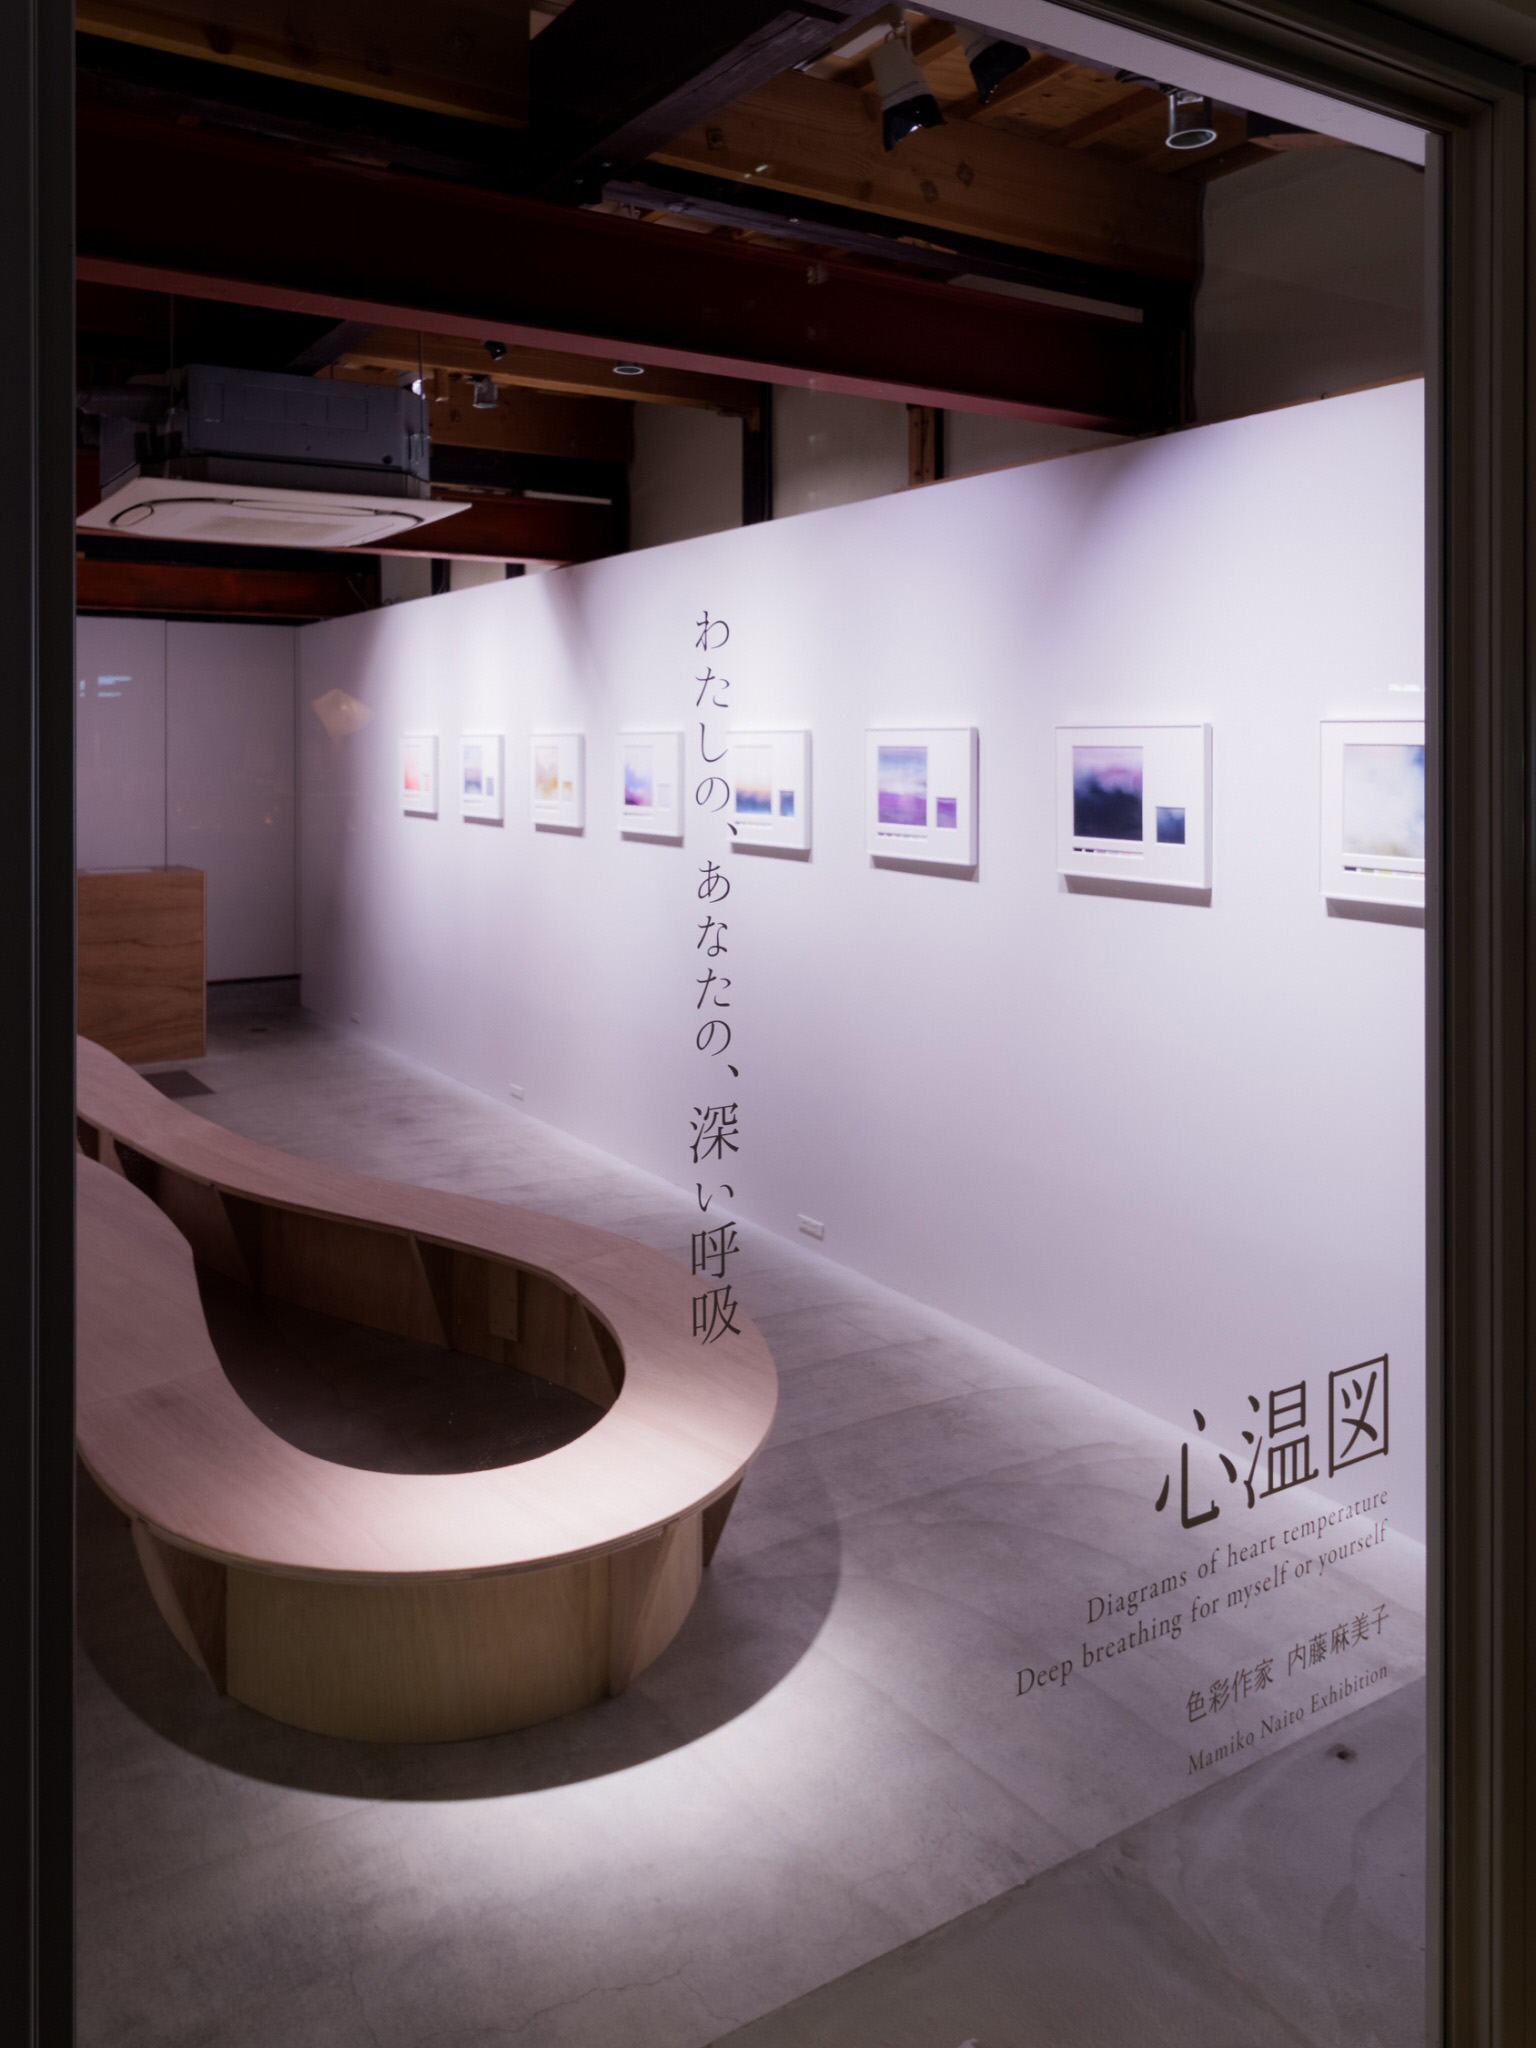 The last day of the solo exhibition